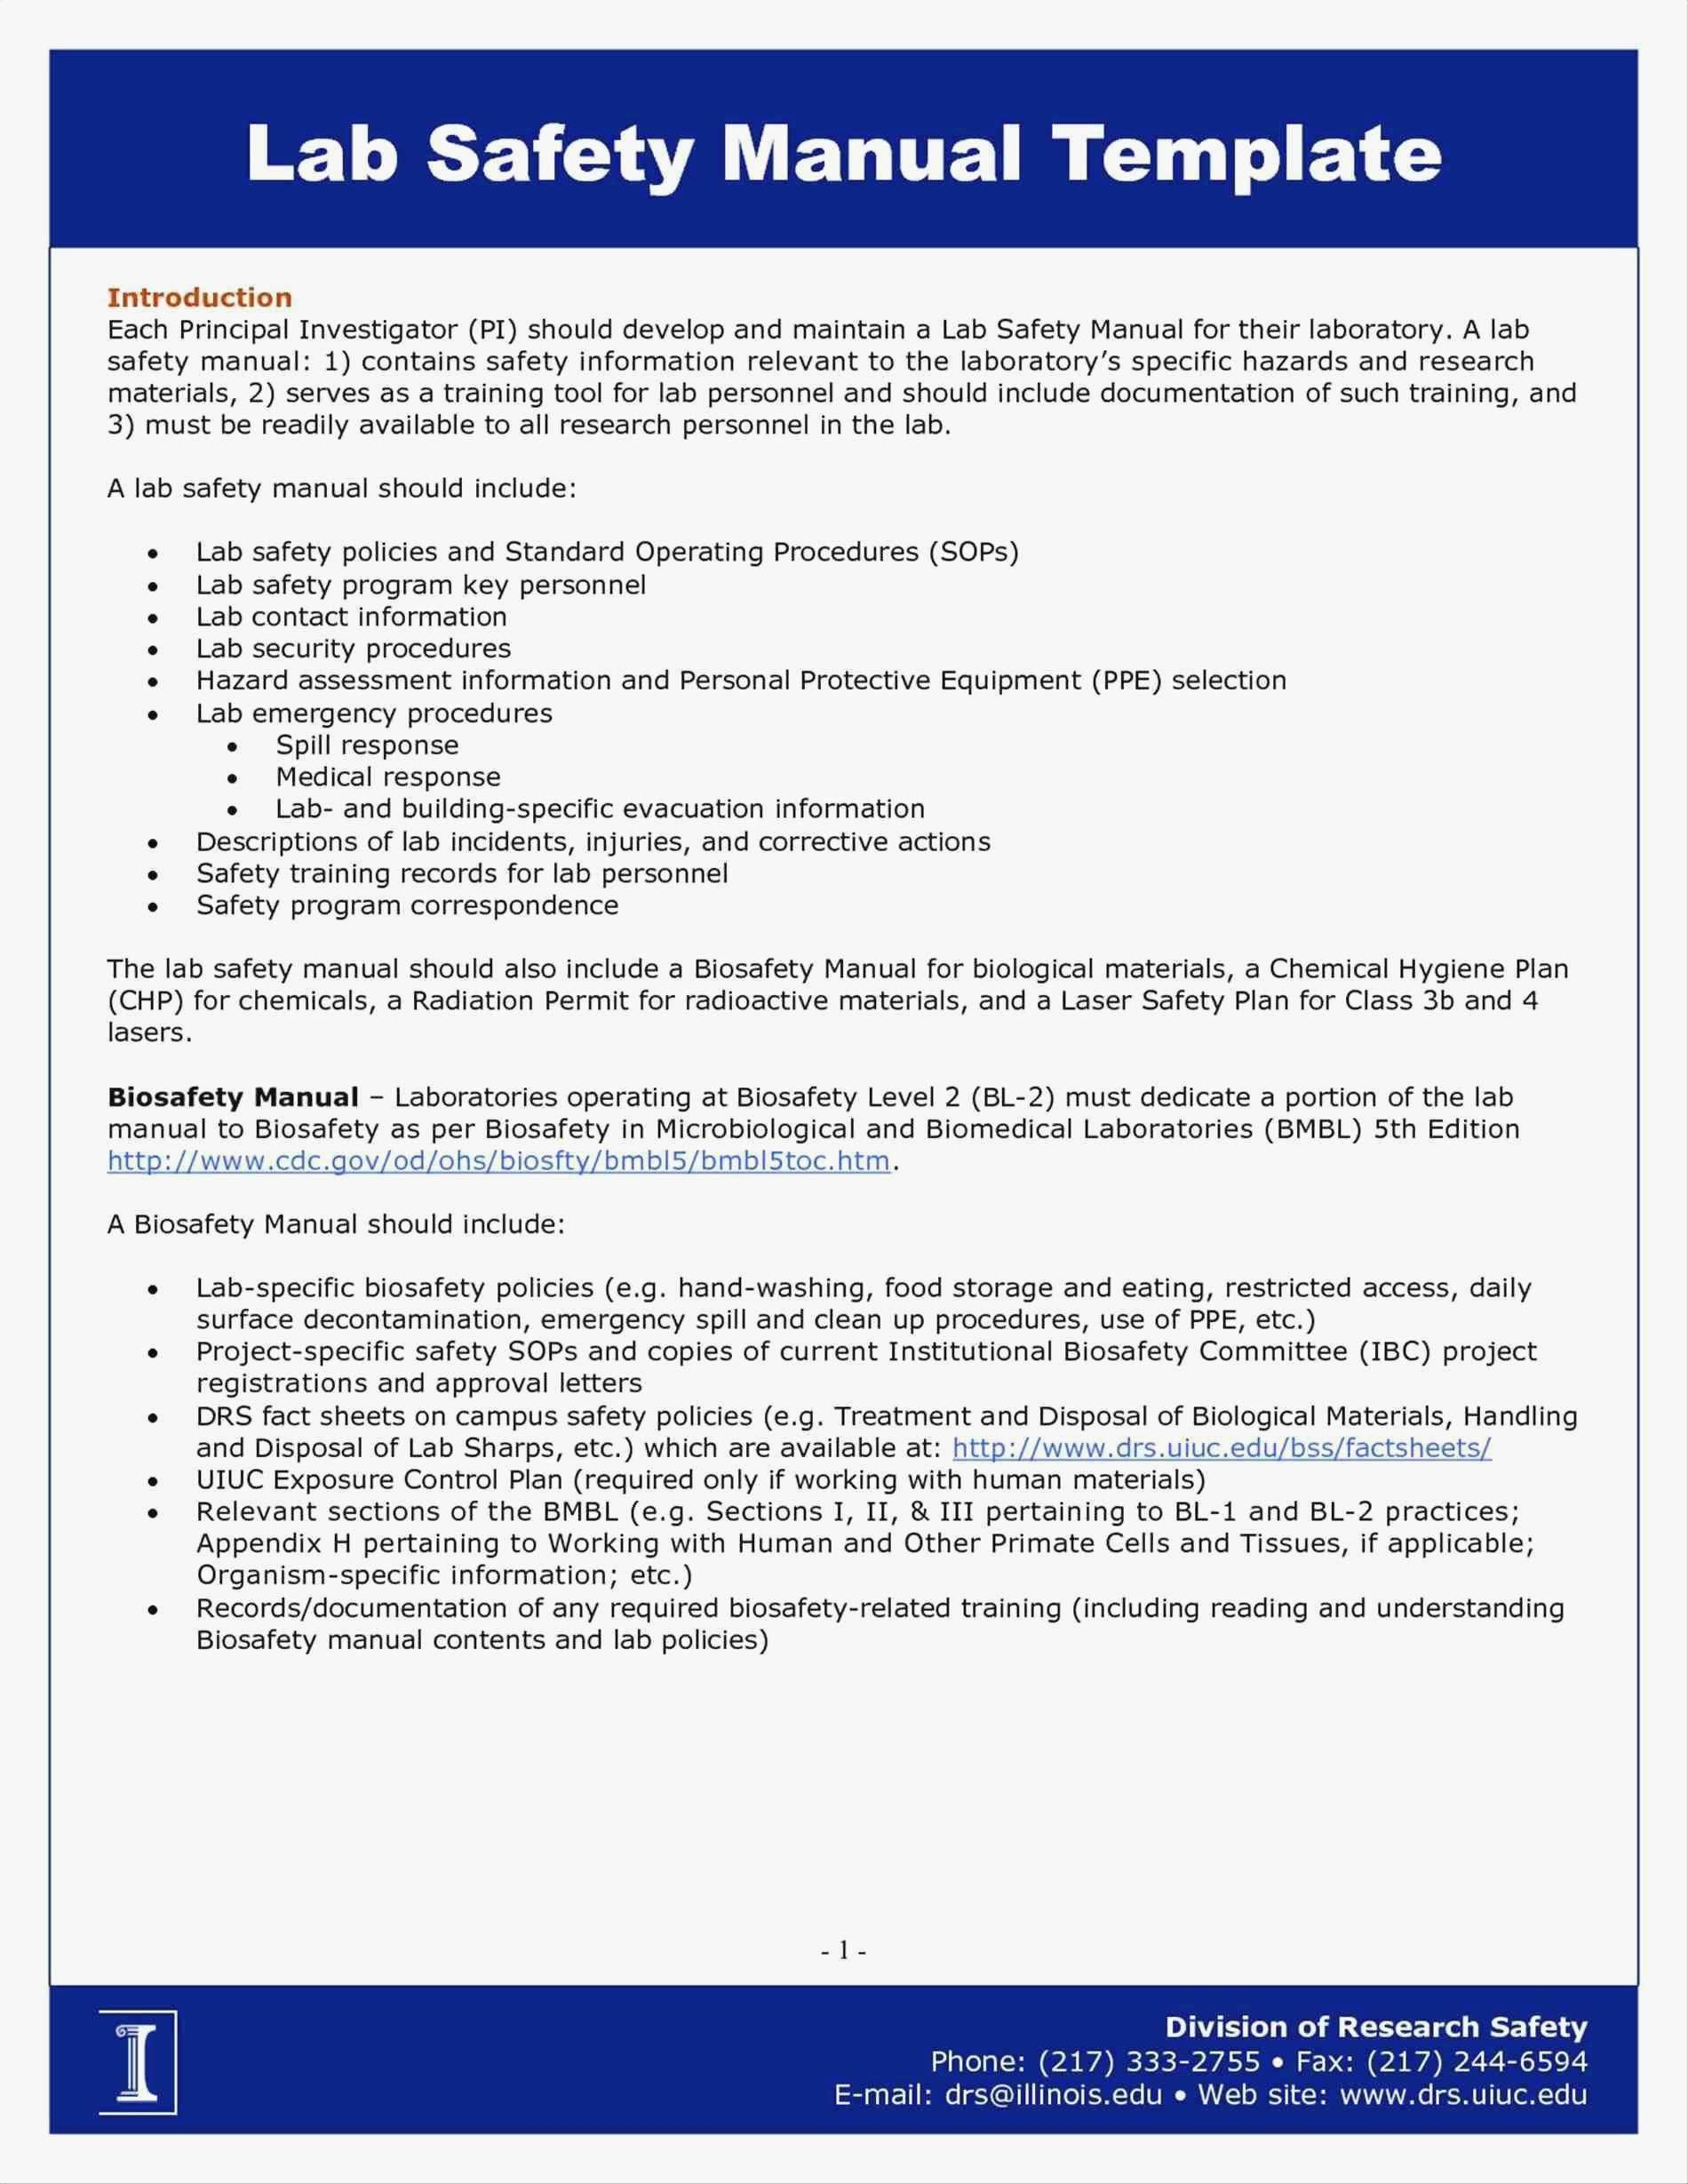 5 Free Math Worksheets First Grade 1 Word Problems Fifth Grade Division Worksheets First A In 2020 Business Card Template Word Business Plan Template Business Template